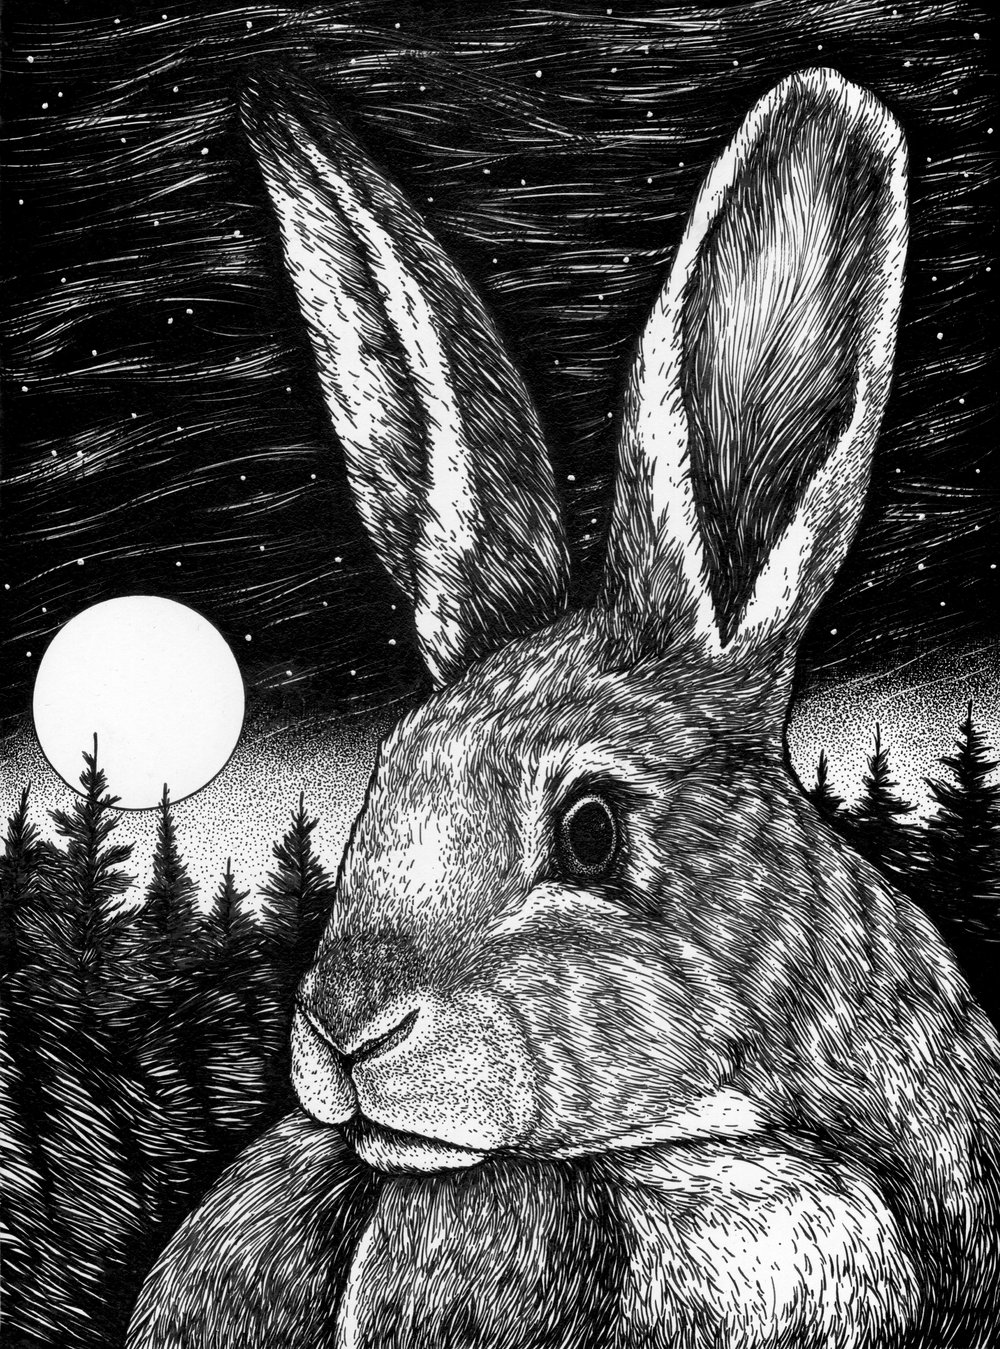 Star Gazing Rabbit